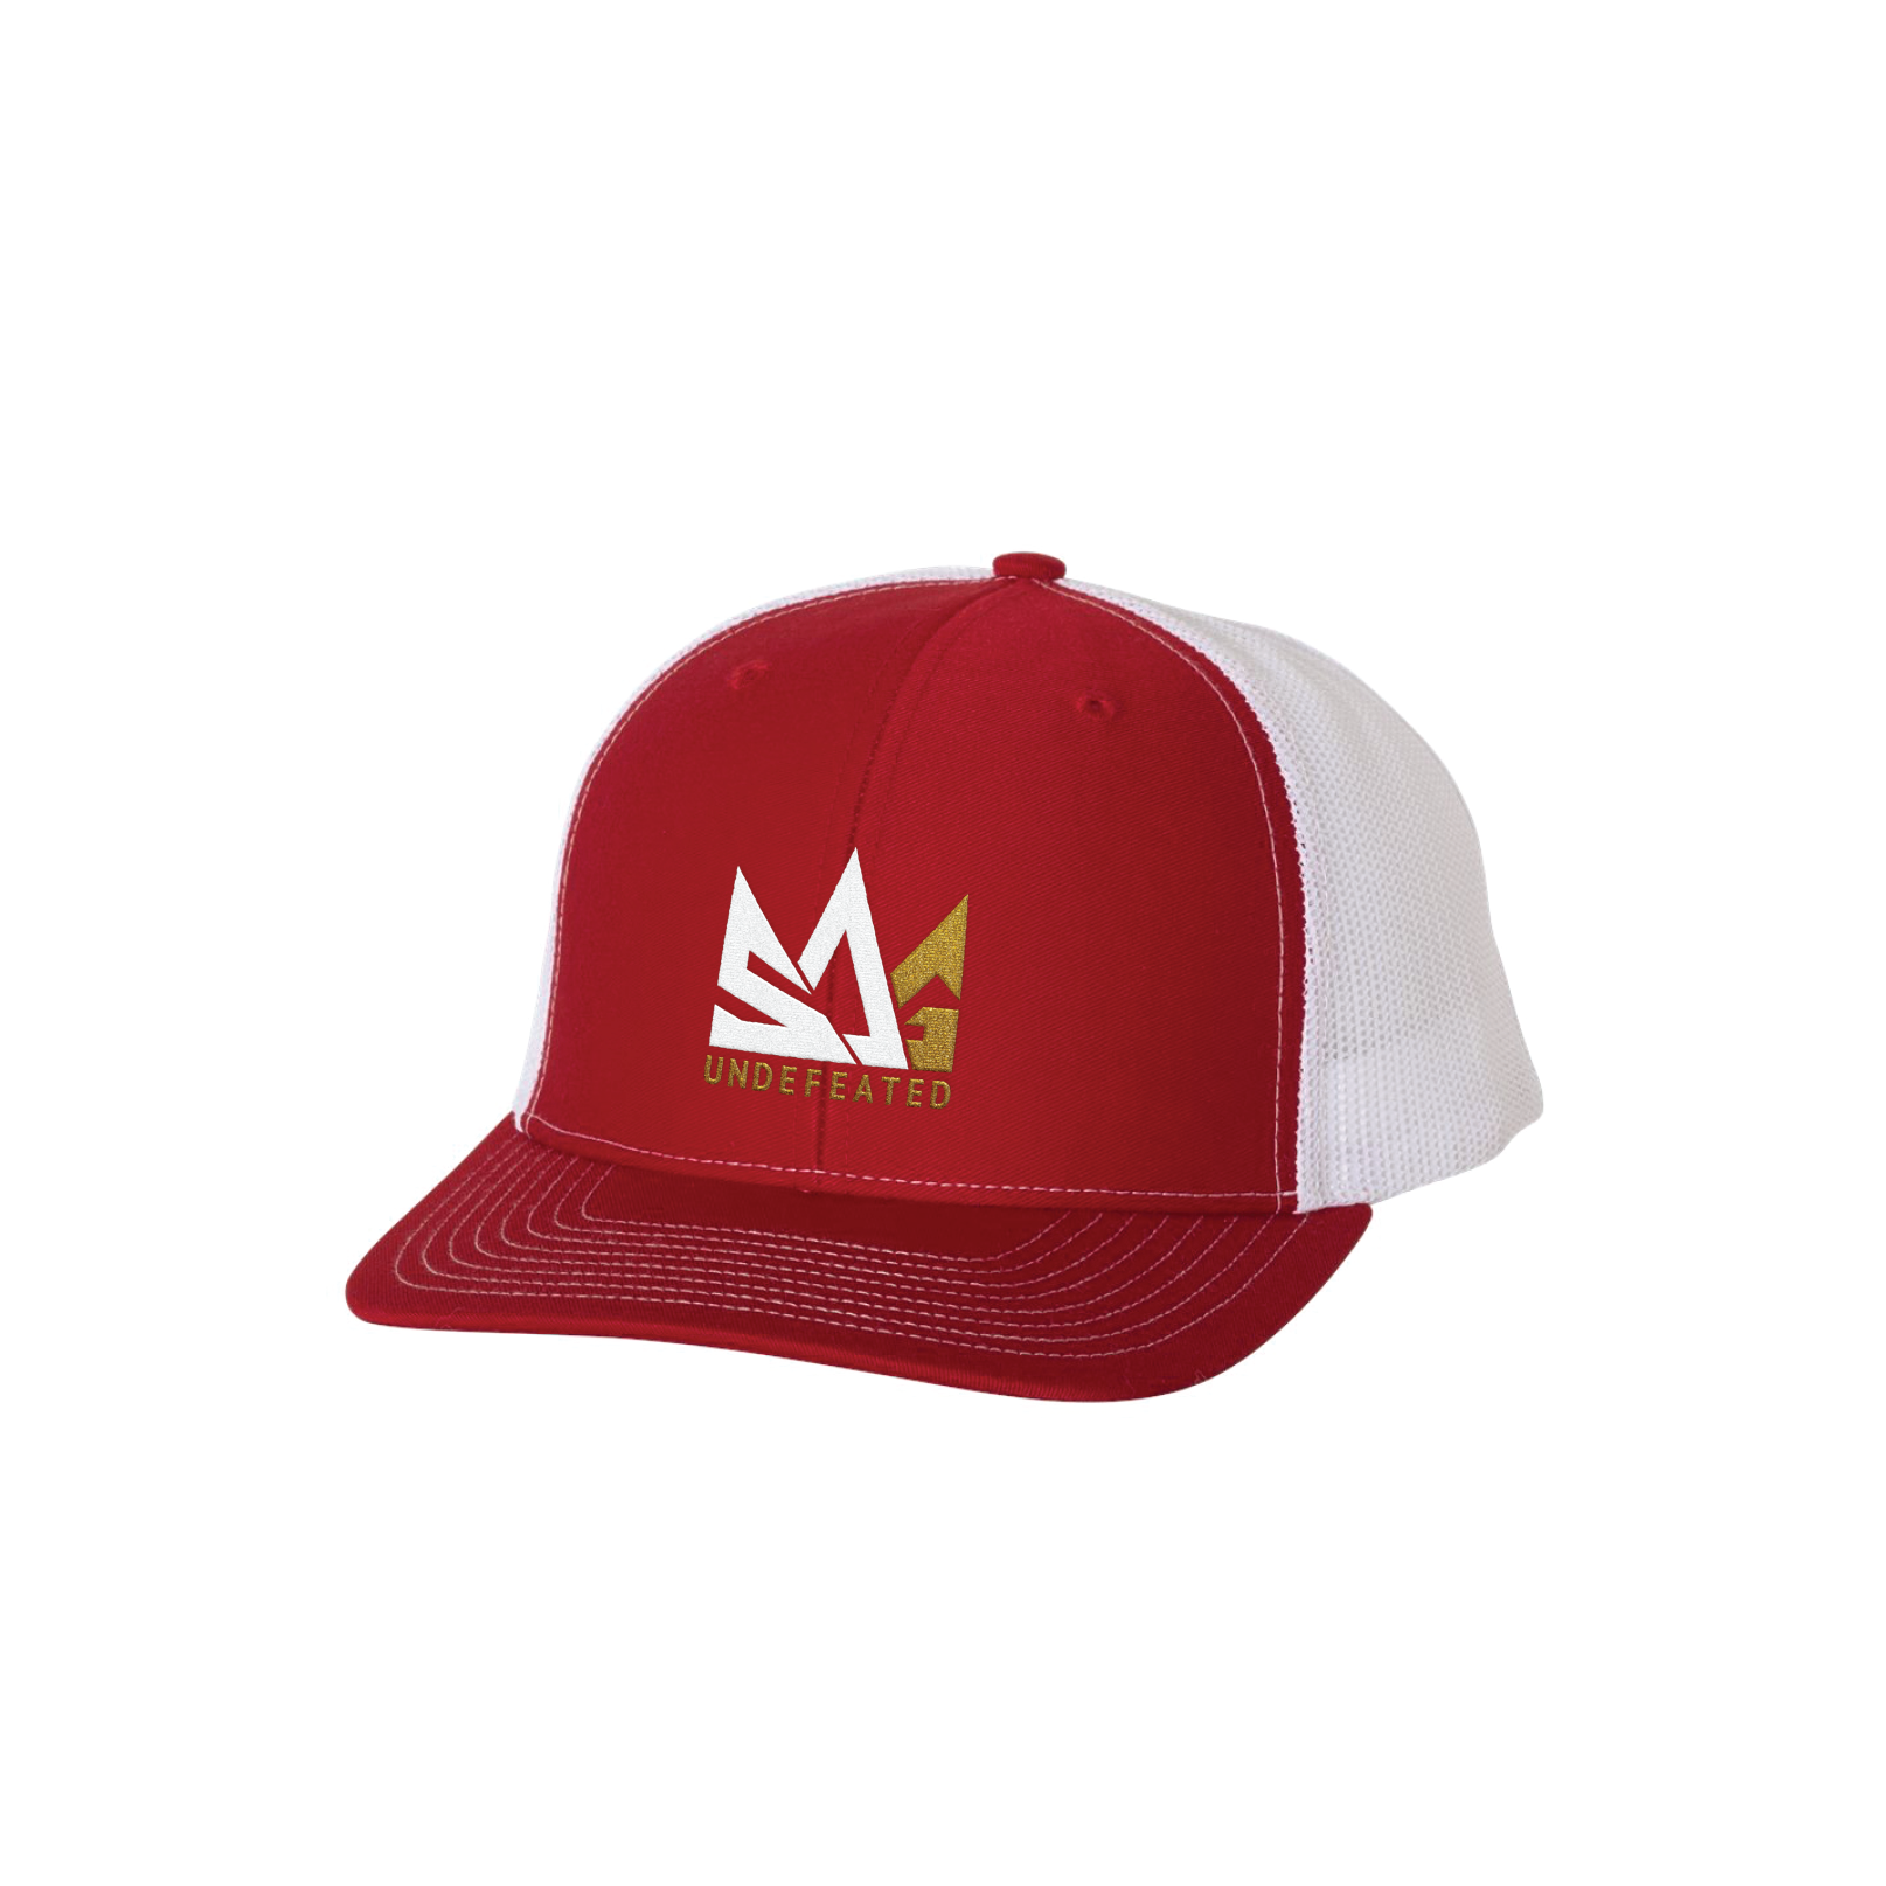 Red camo hat mock up